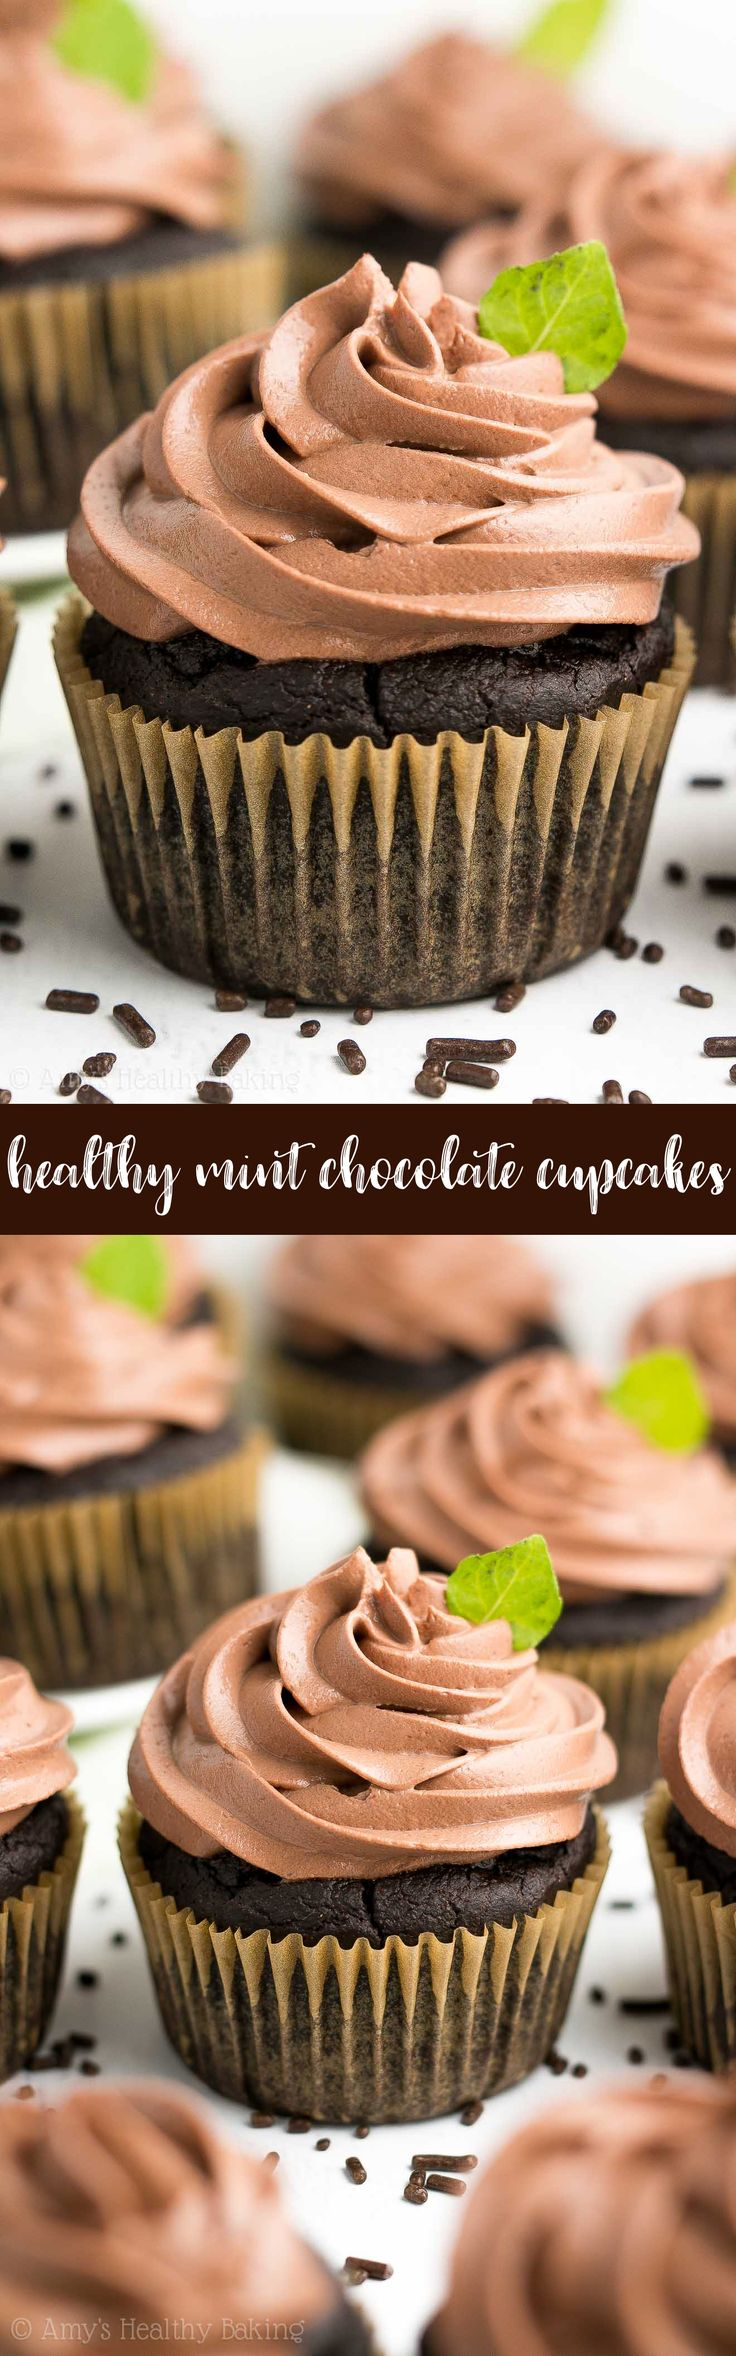 Healthy Mint Chocolate Cupcakes -- only 97 calories, including the chocolate frosting! They taste AMAZING & so rich! And that healthy frosting contains NO butter or powdered sugar! ♡ easy mint chocolate cupcakes | chocolate cupcakes from scratch | simple chocolate frosting | healthy greek yogurt frosting | healthy homemade chocolate cupcakes